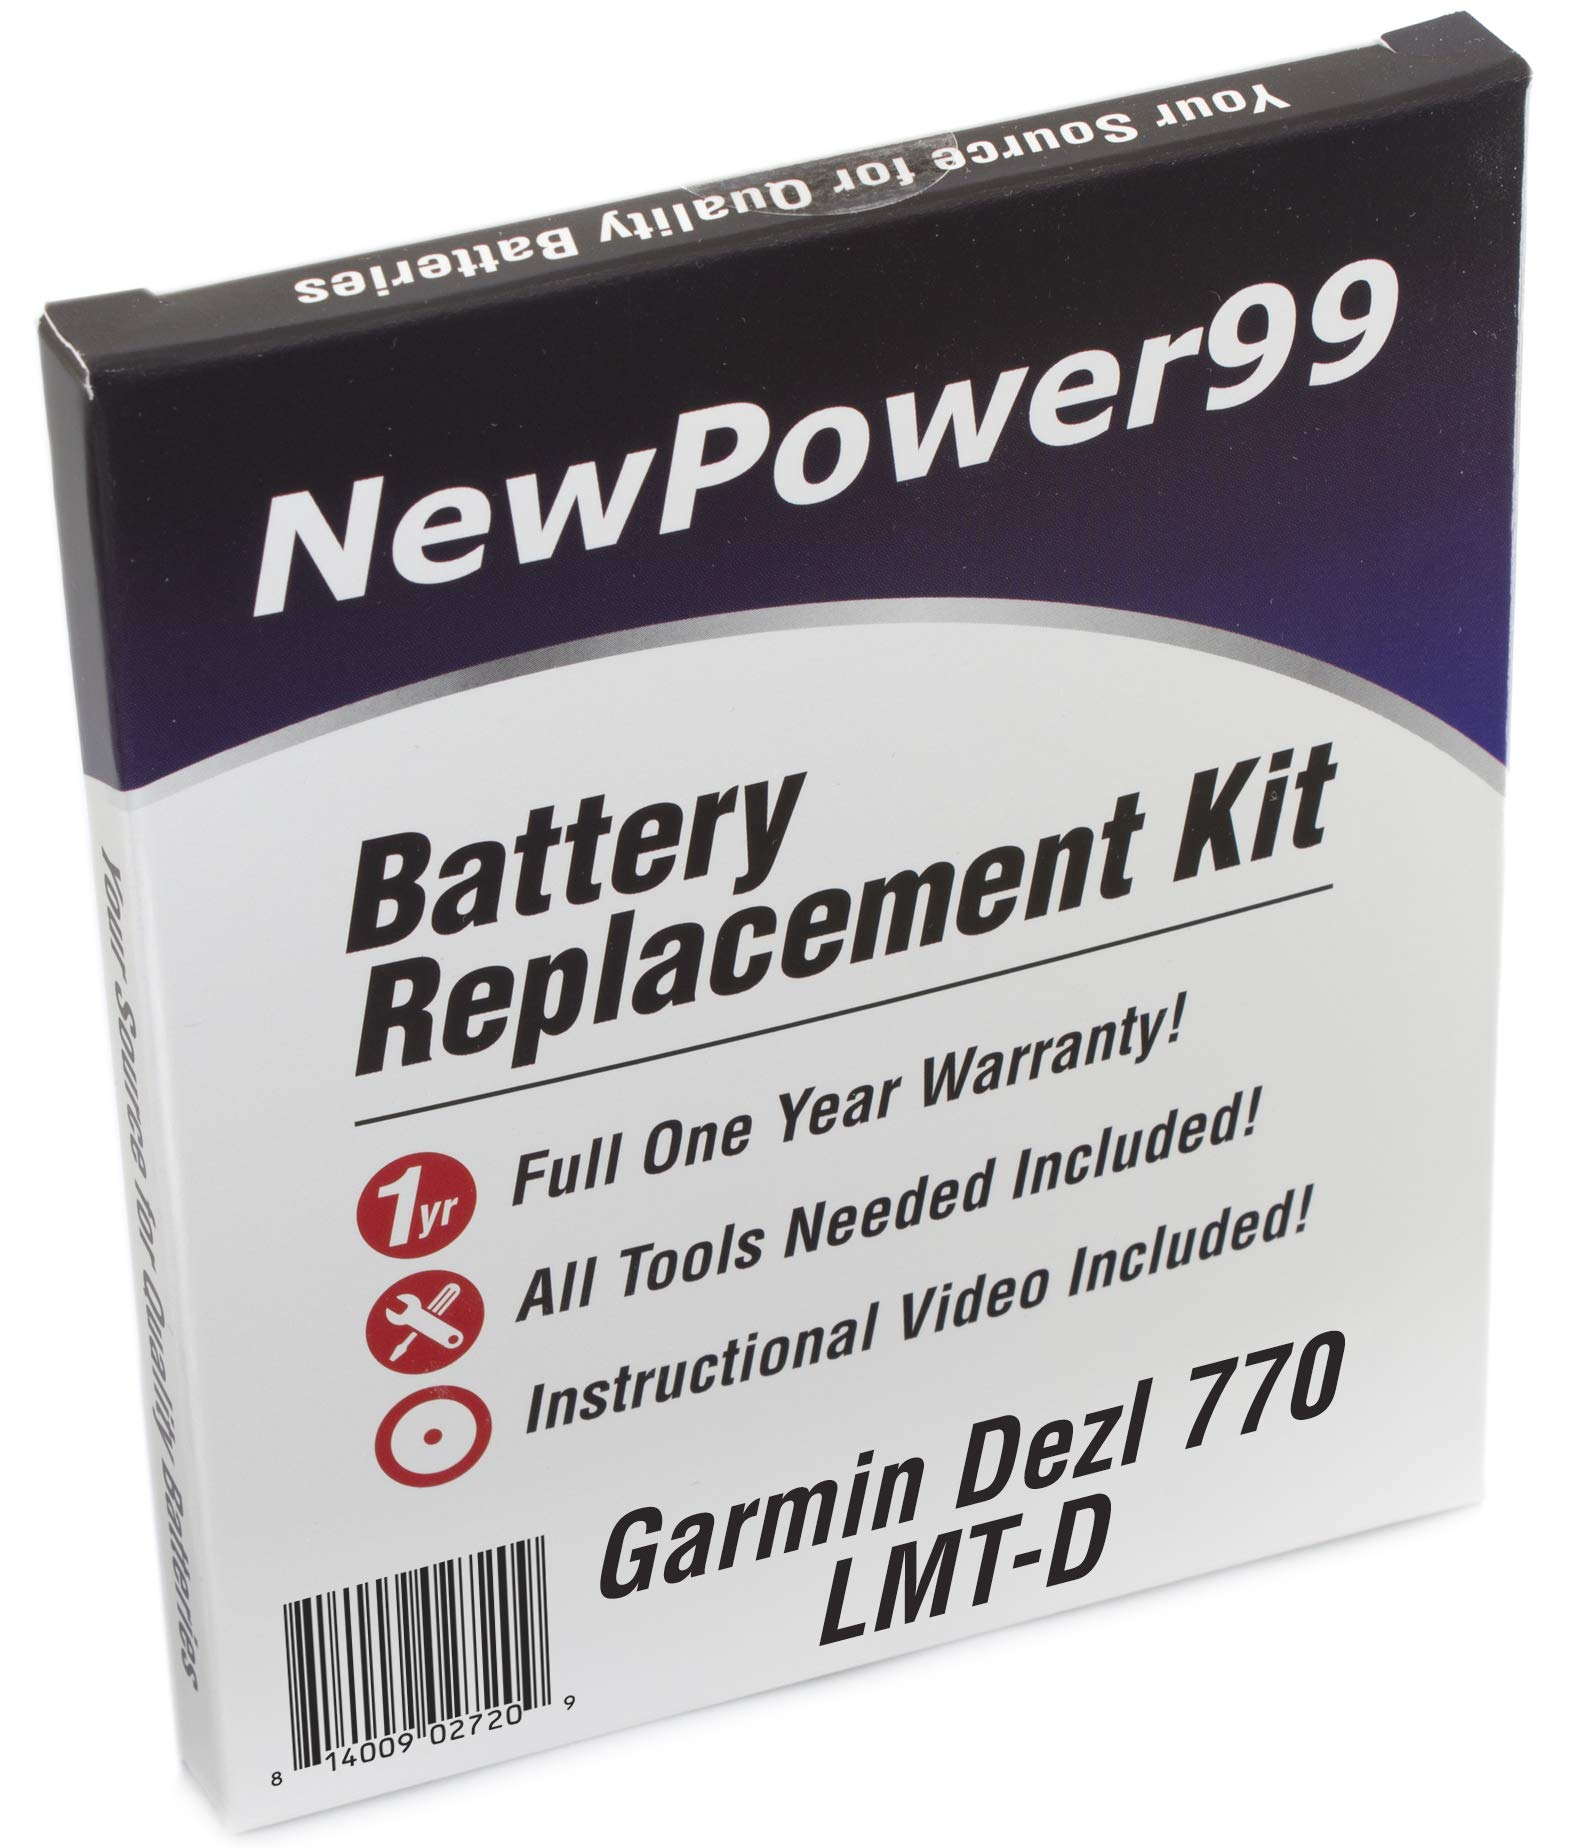 NewPower99 Battery Replacement Kit for Garmin Dezl 770LMT-D with Installation Video, Tools, and Extended Life Battery. by NewPower99